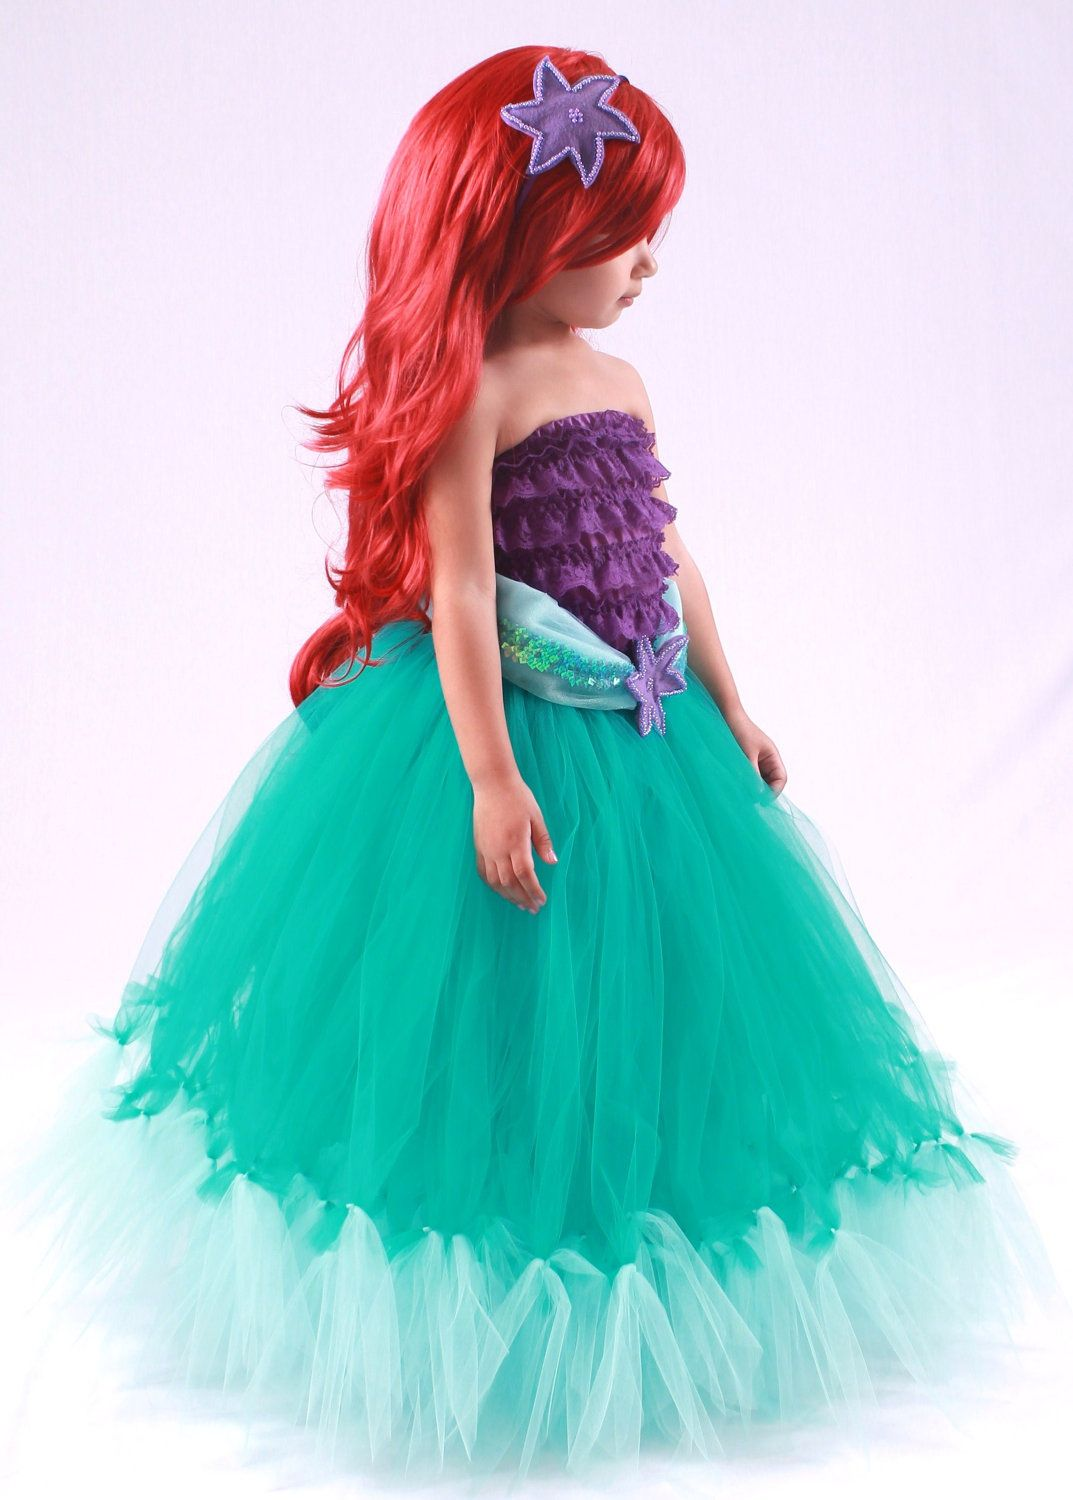 Ideal disfraz de la sirenita :: Ideal Princess Ariel costume | moños ...